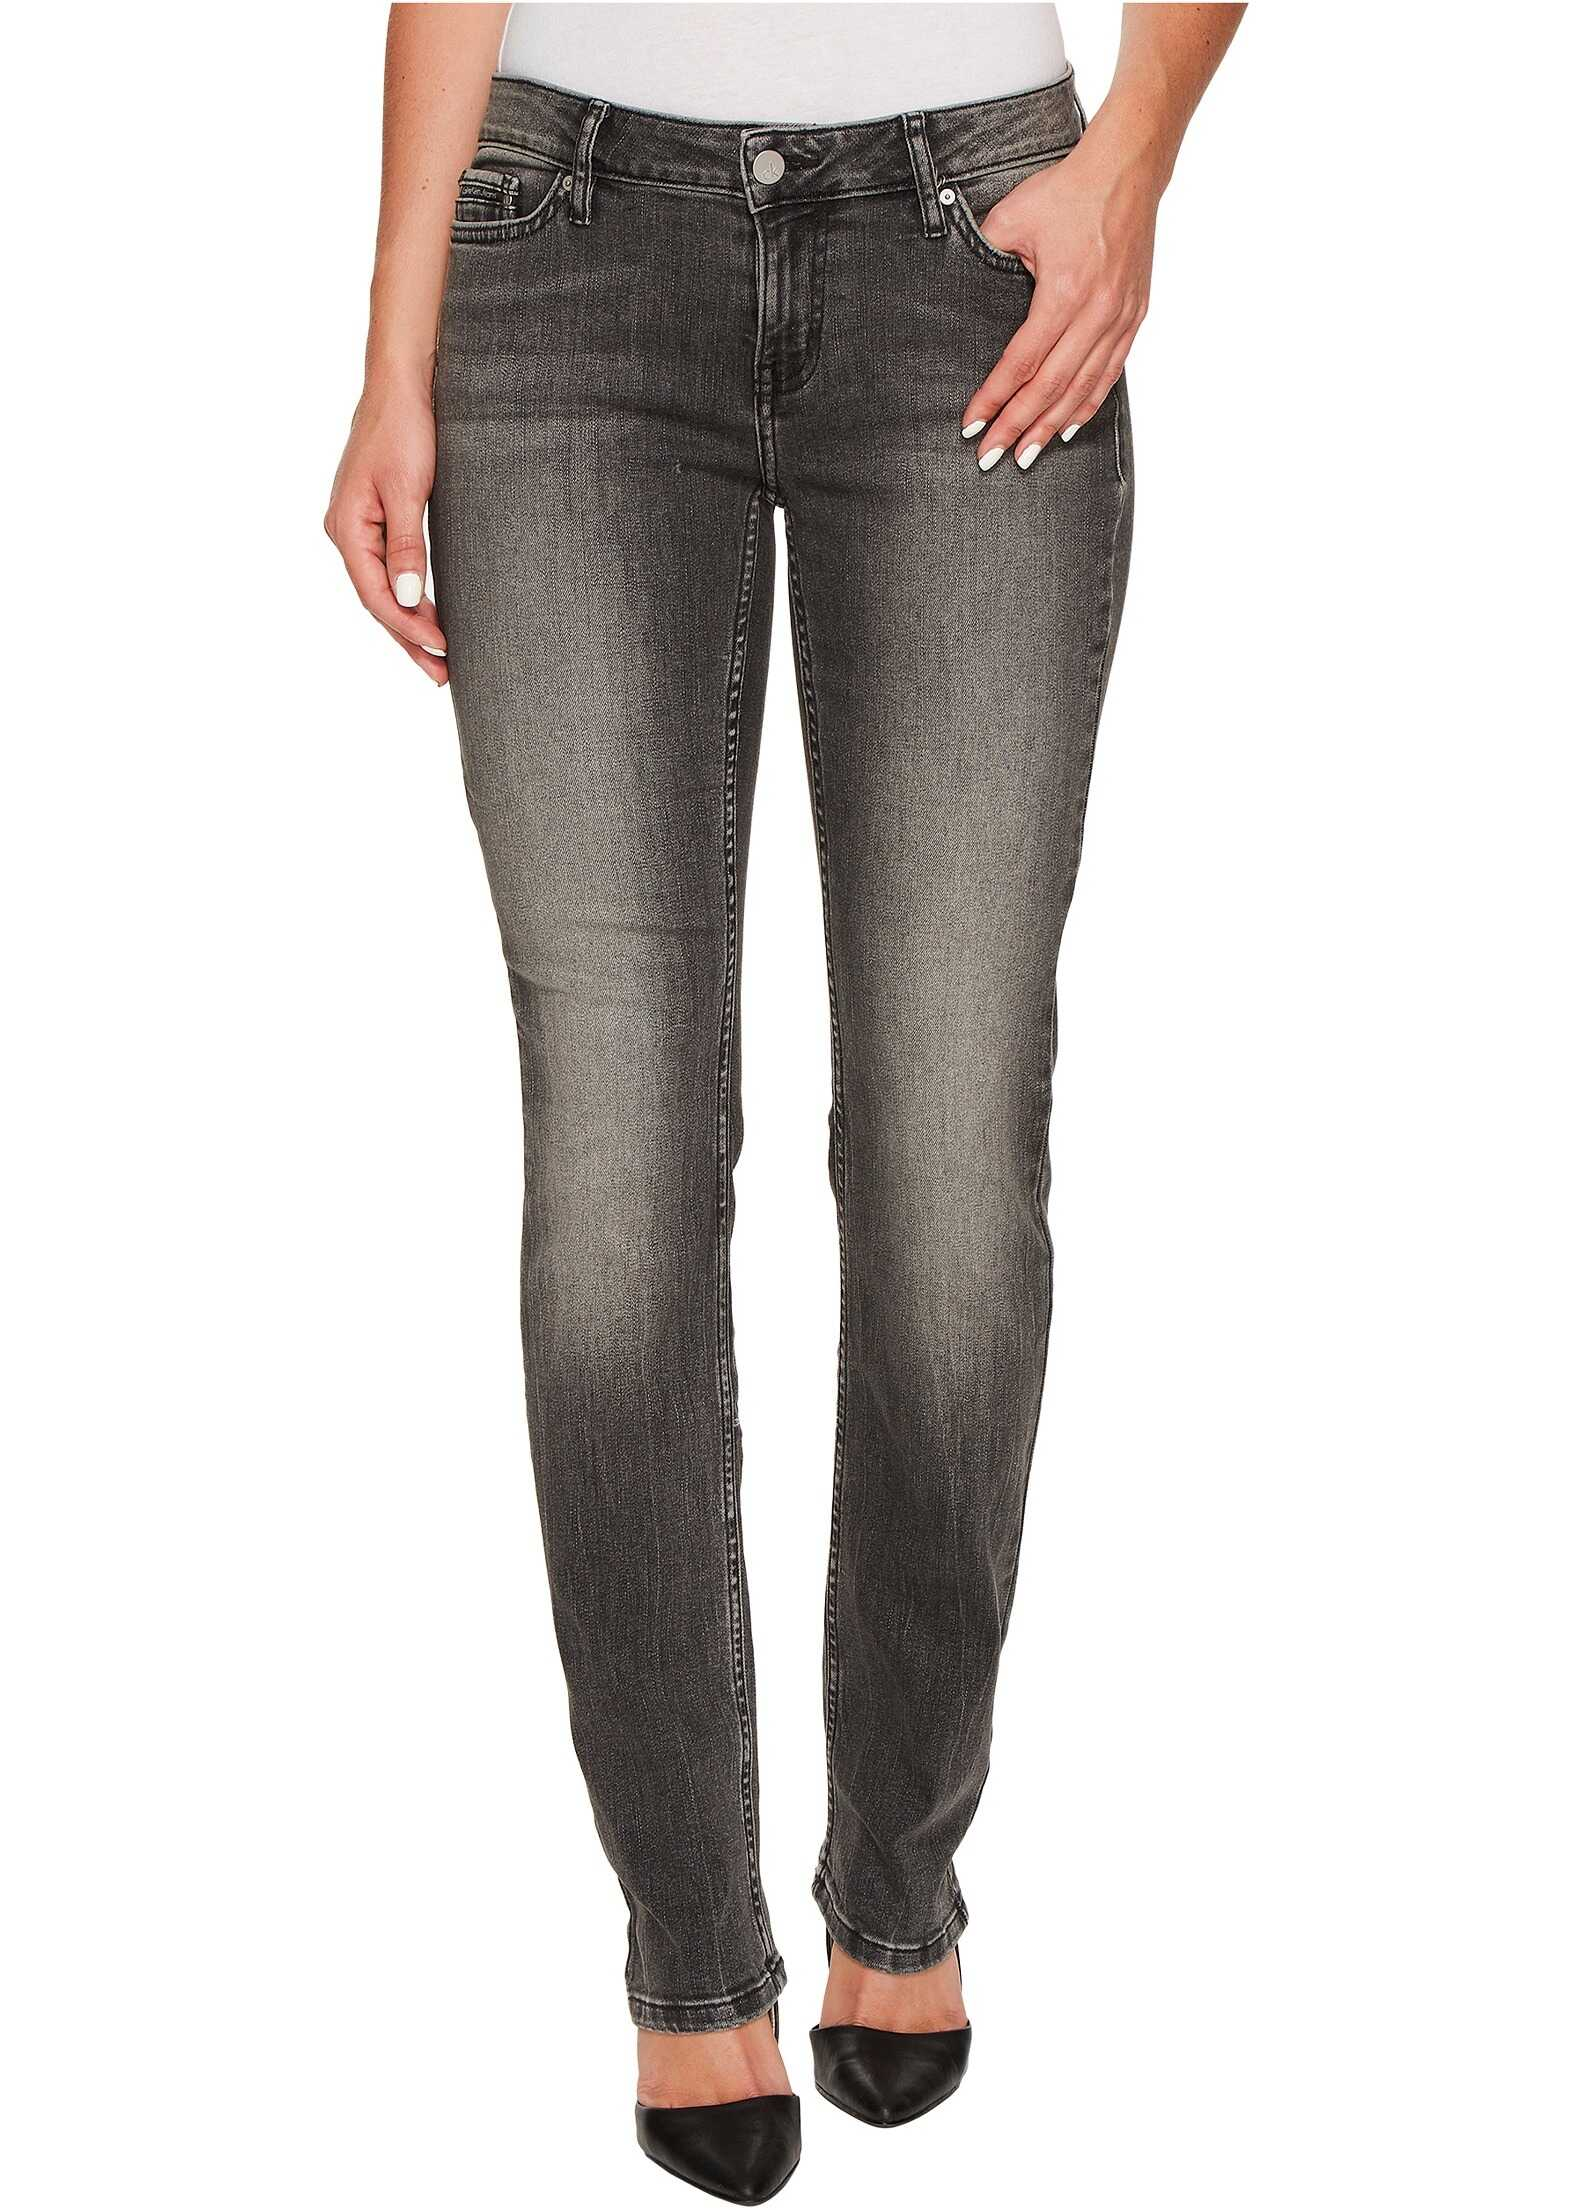 Calvin Klein Jeans Straight Leg Jeans in Black Top Wash Black Top